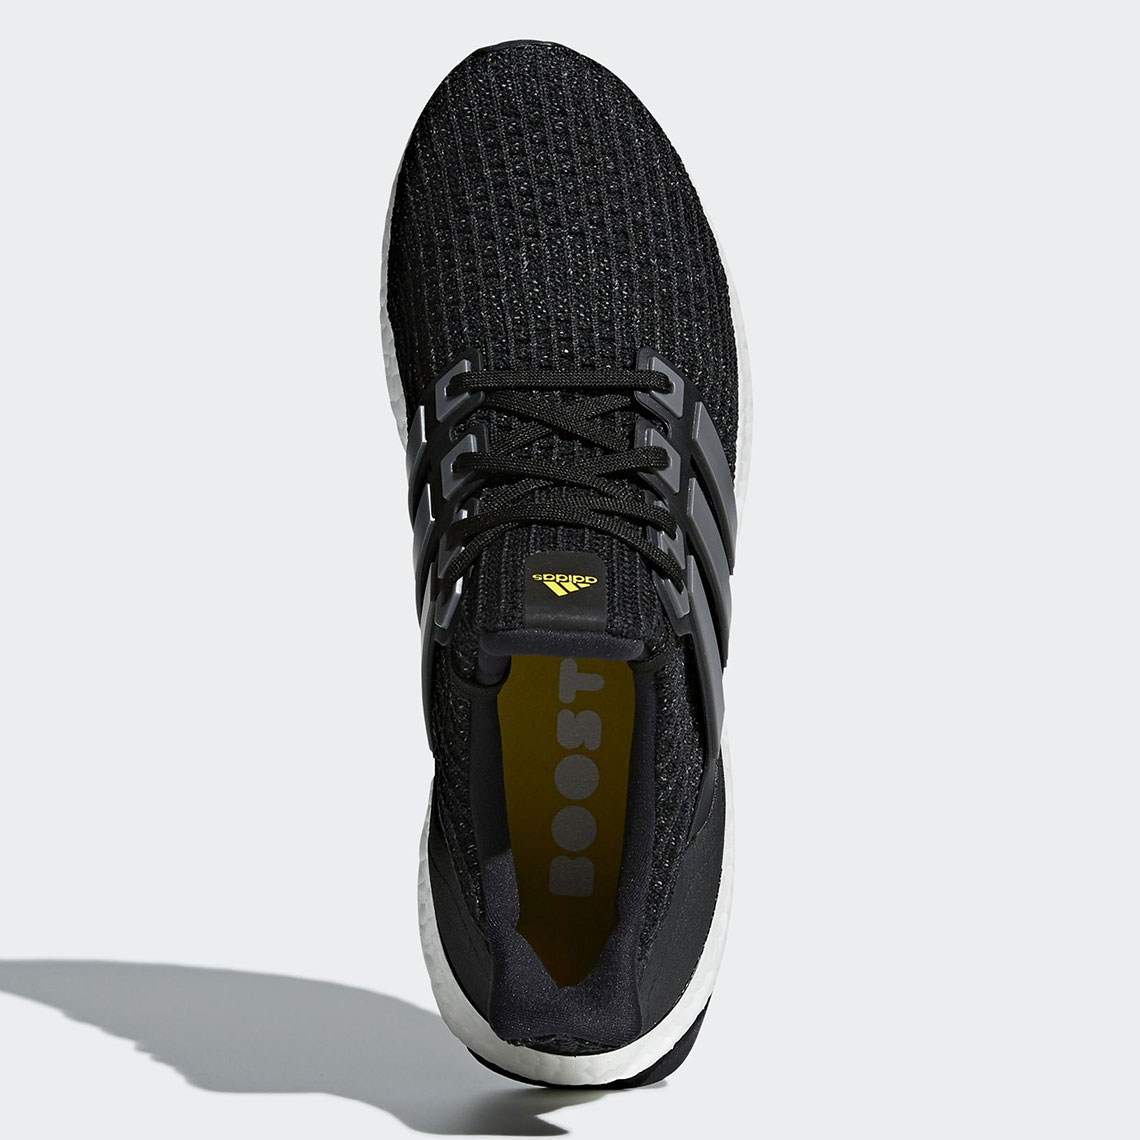 adfb8556814eb These men s neutral running shoes harness the energy-returning power of  Boost cushioning to deliver an energised push-off with each footstrike.